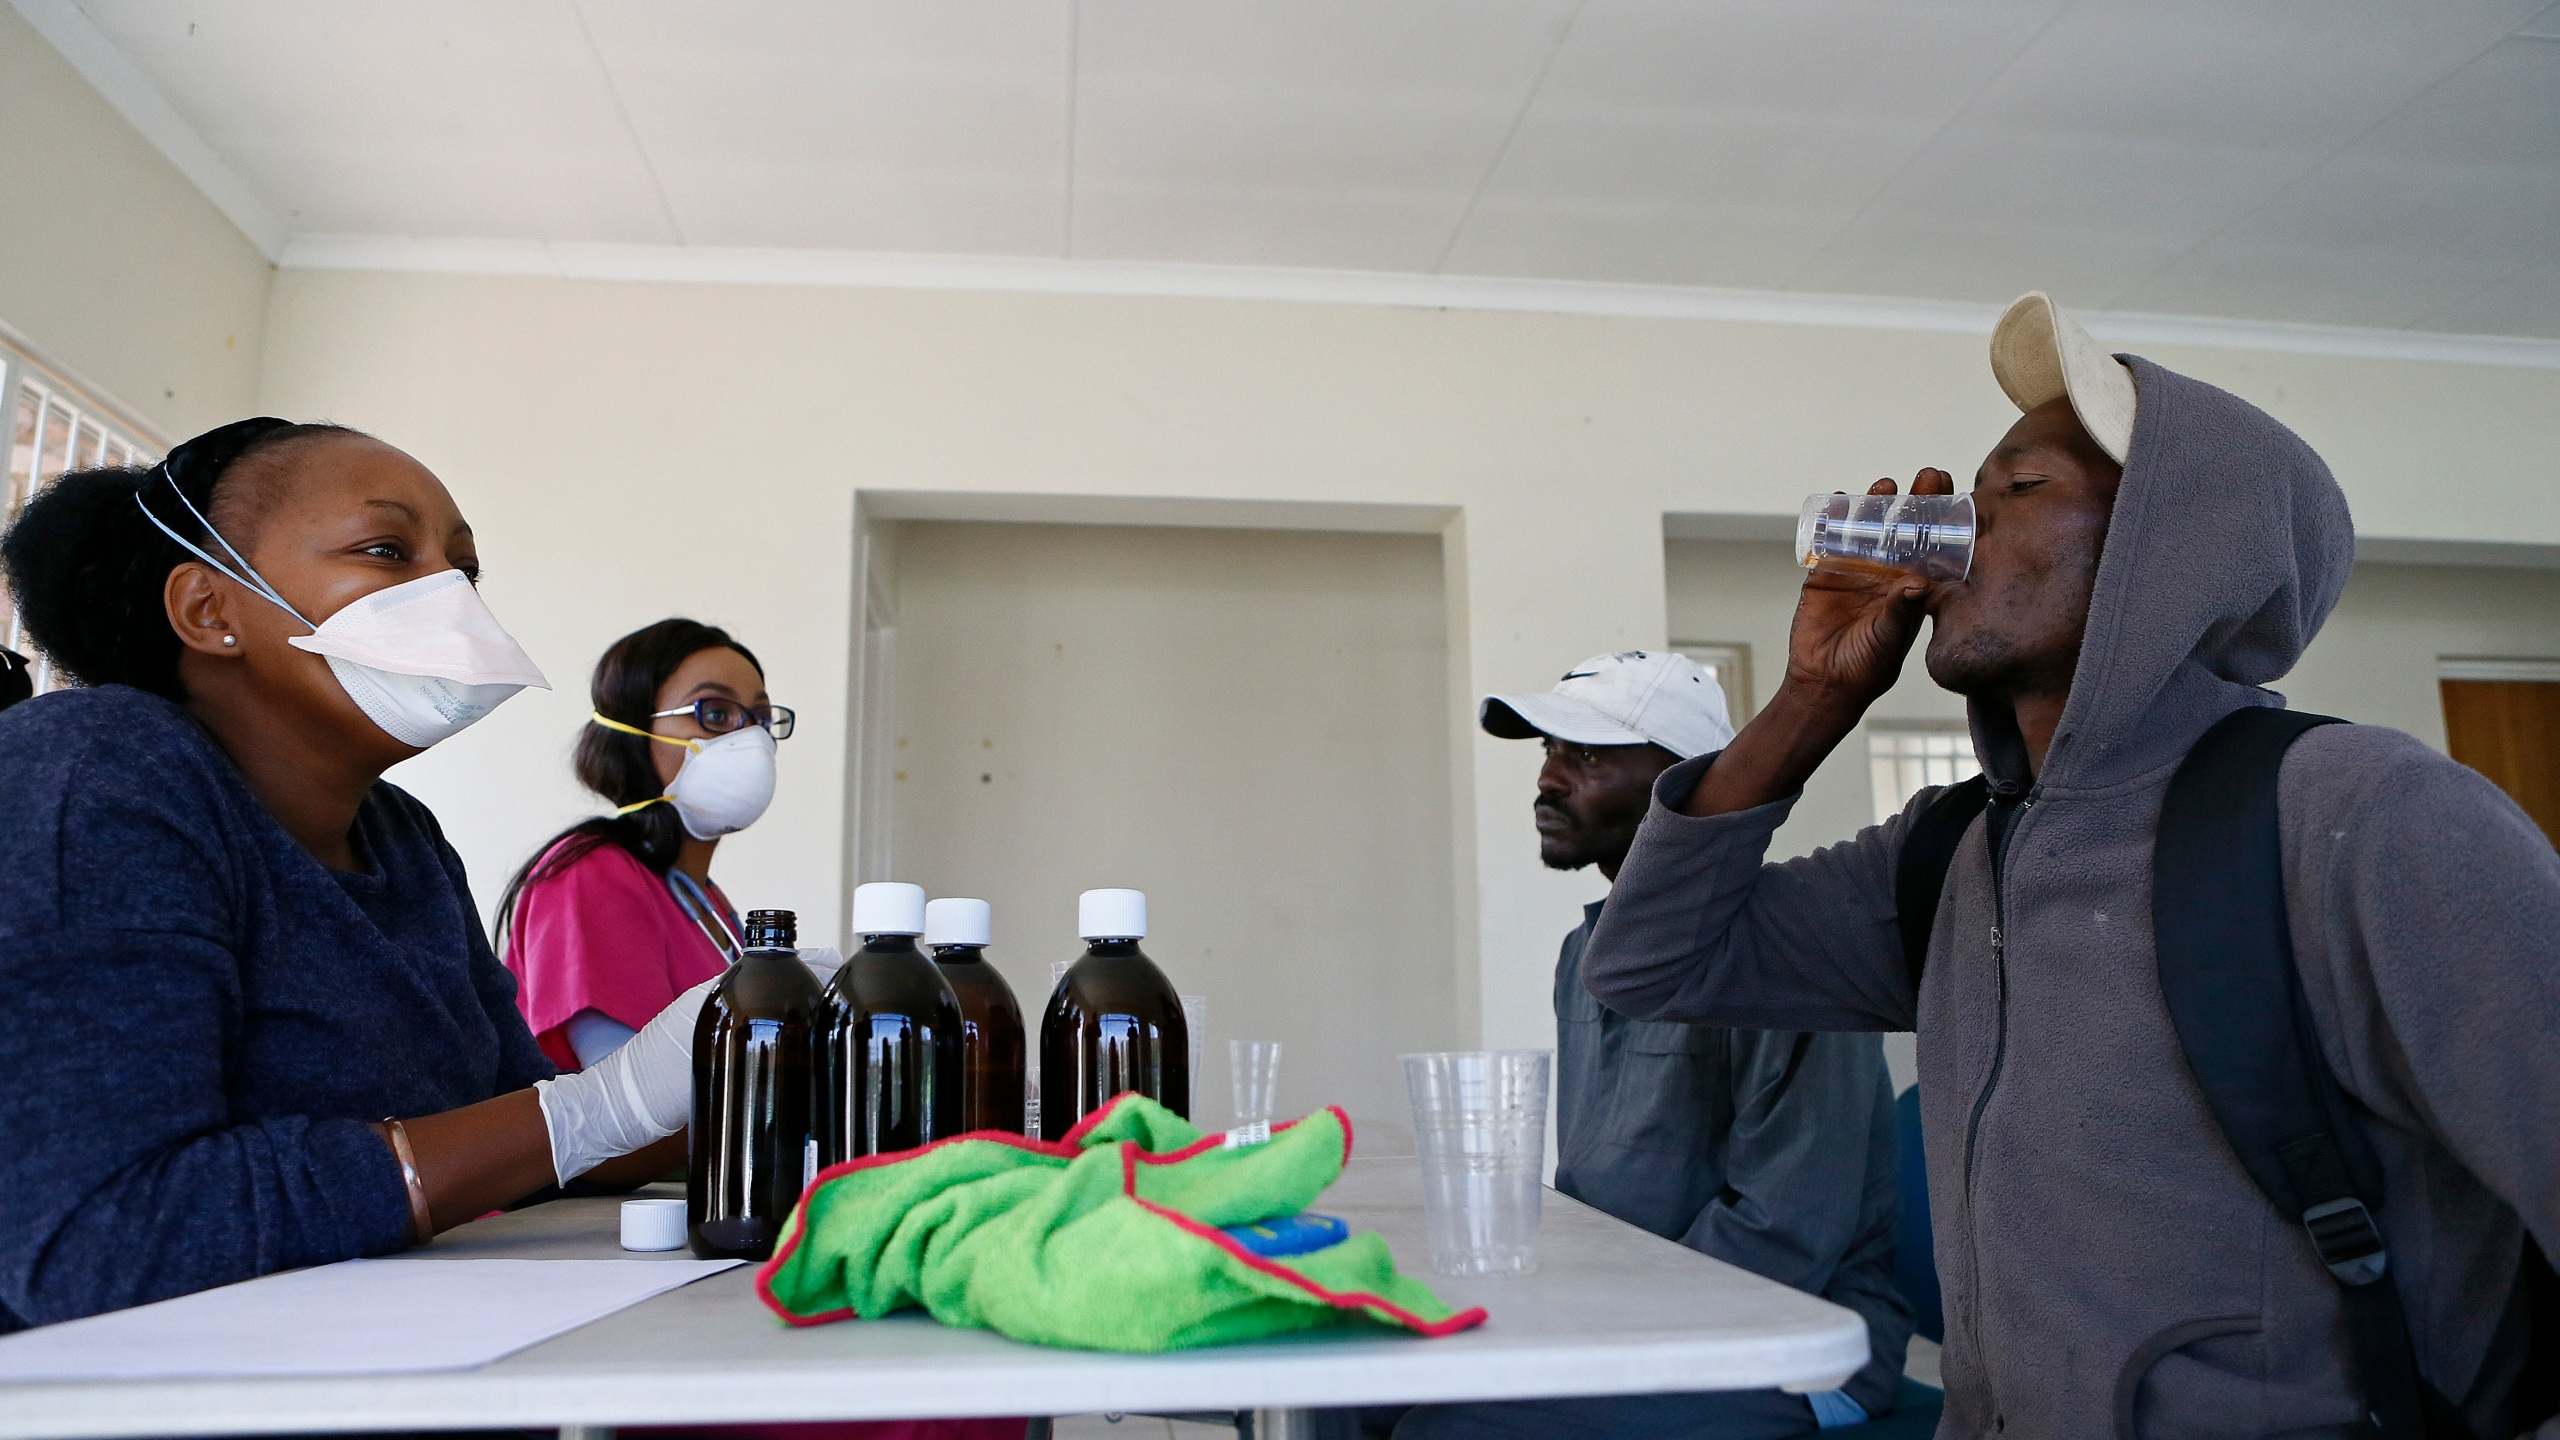 Health professionals look on as a homeless man drinks the Methadone Oral Solution, provided as an effort to care for drug-dependent people, at a shelter at the Lyttelton Sports Centre in Pretoria on April 16, 2020. The building is a temporary shelter being provided for homeless people amid the COVID-19 pandemic in South Africa. (Phill Magakoe / AFP via Getty Images)